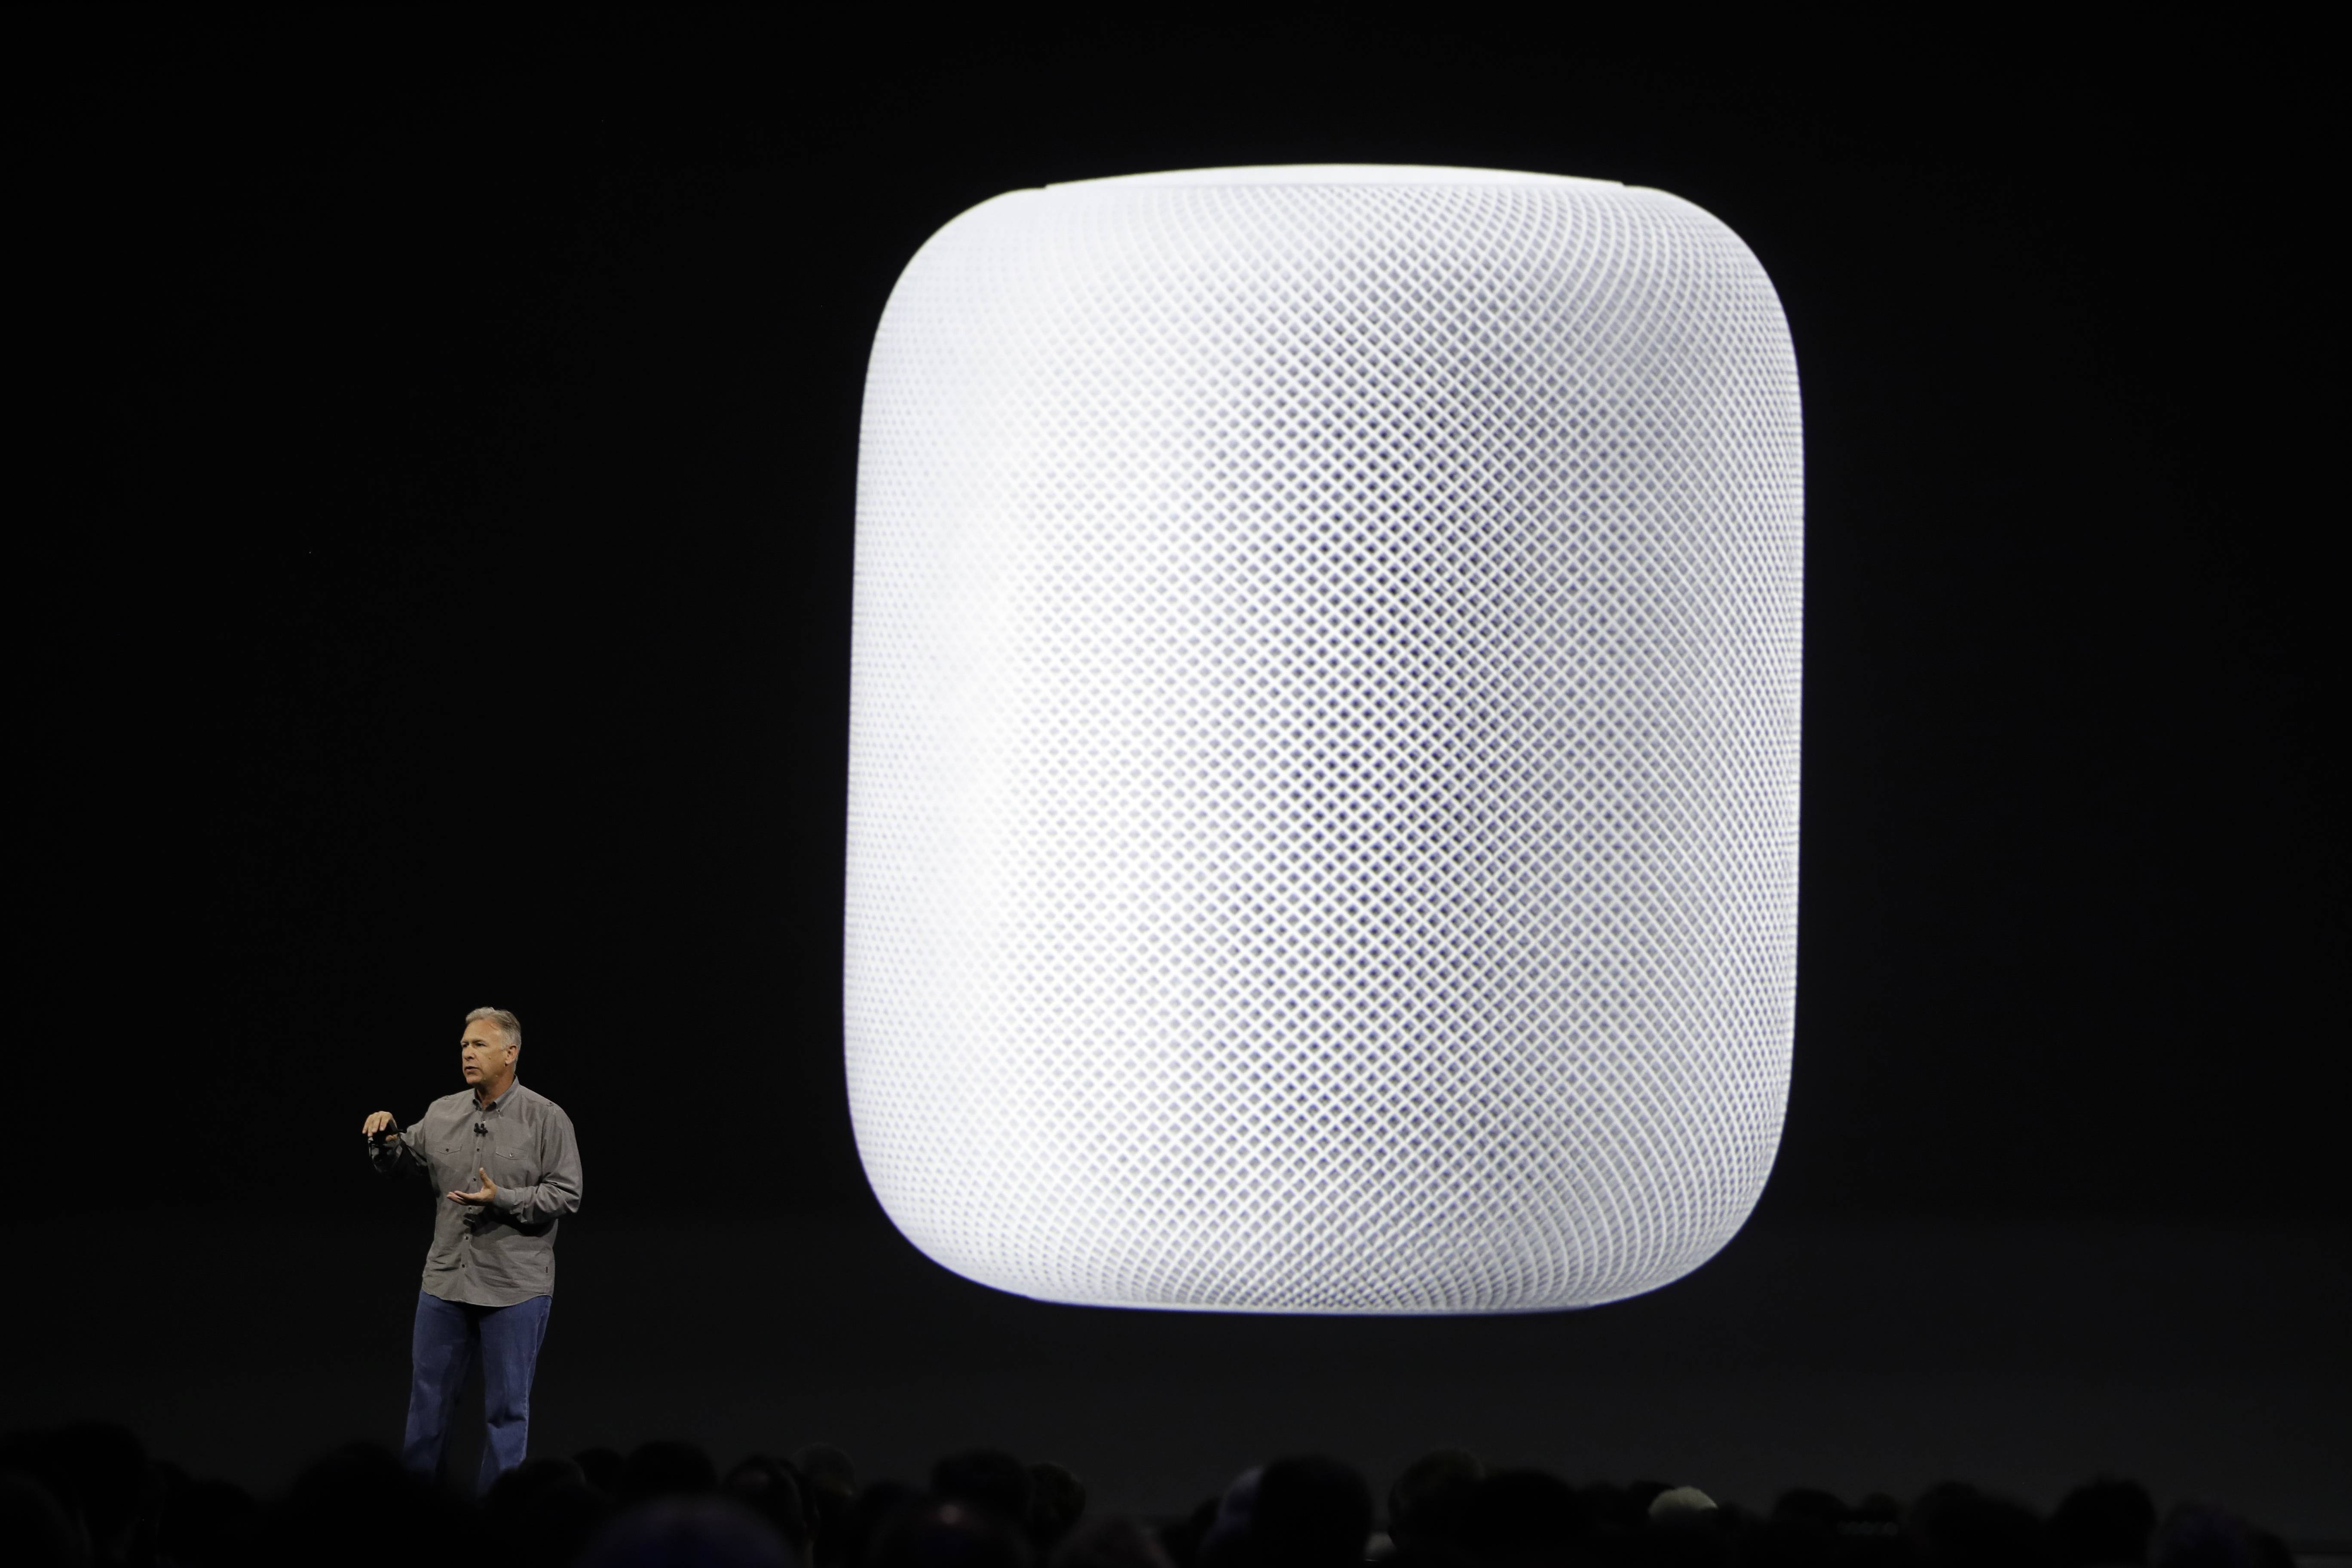 Phil Schiller, Apple's Senior Vice President of Worldwide Marketing, introduces the HomePod speaker at the Apple Worldwide Developers Conference Monday, June 5, 2017, in San Jose, Calif.